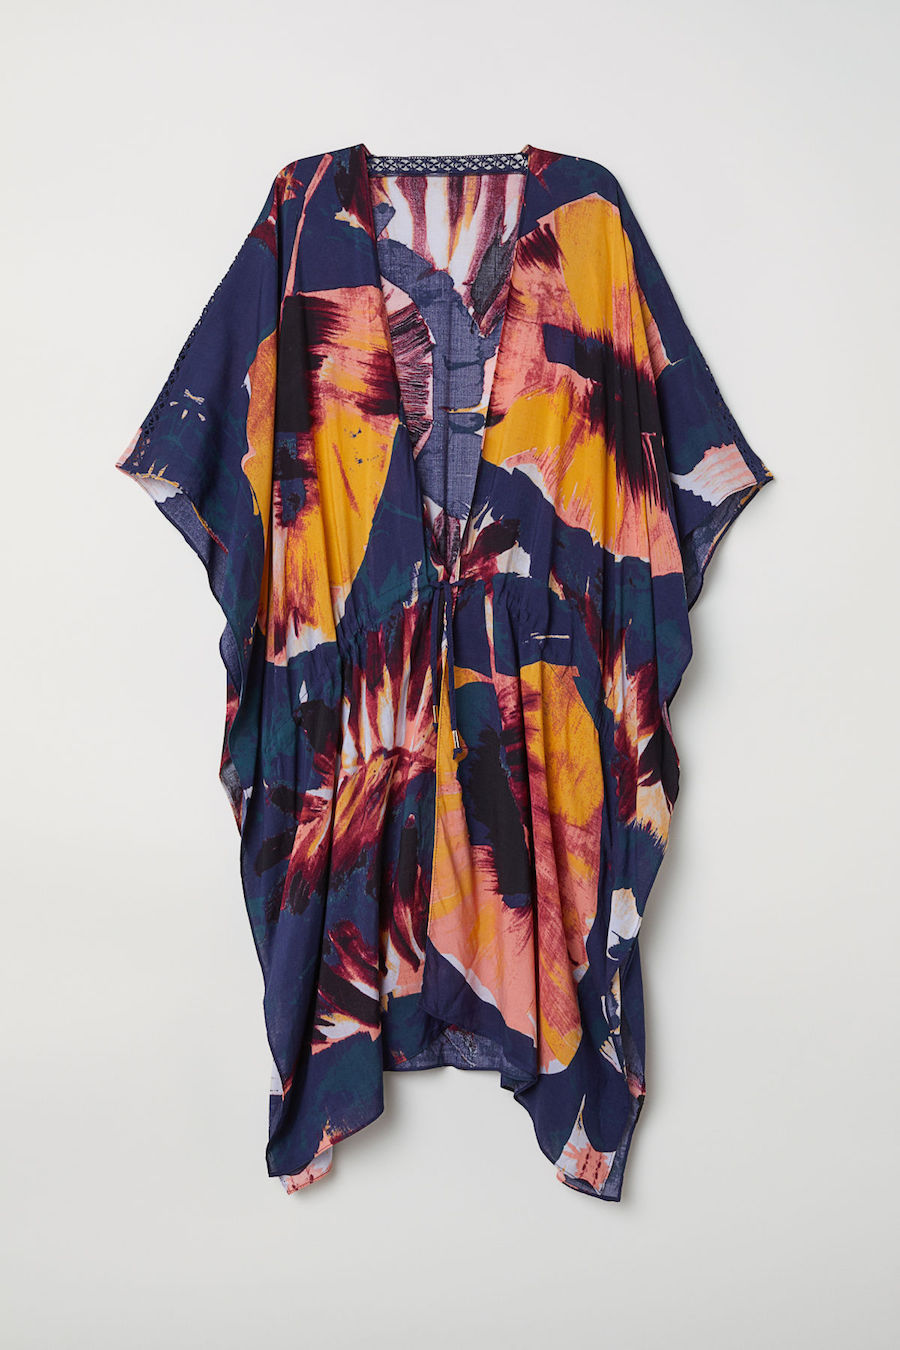 Cool pool coverups for moms: Floral caftan at H&M